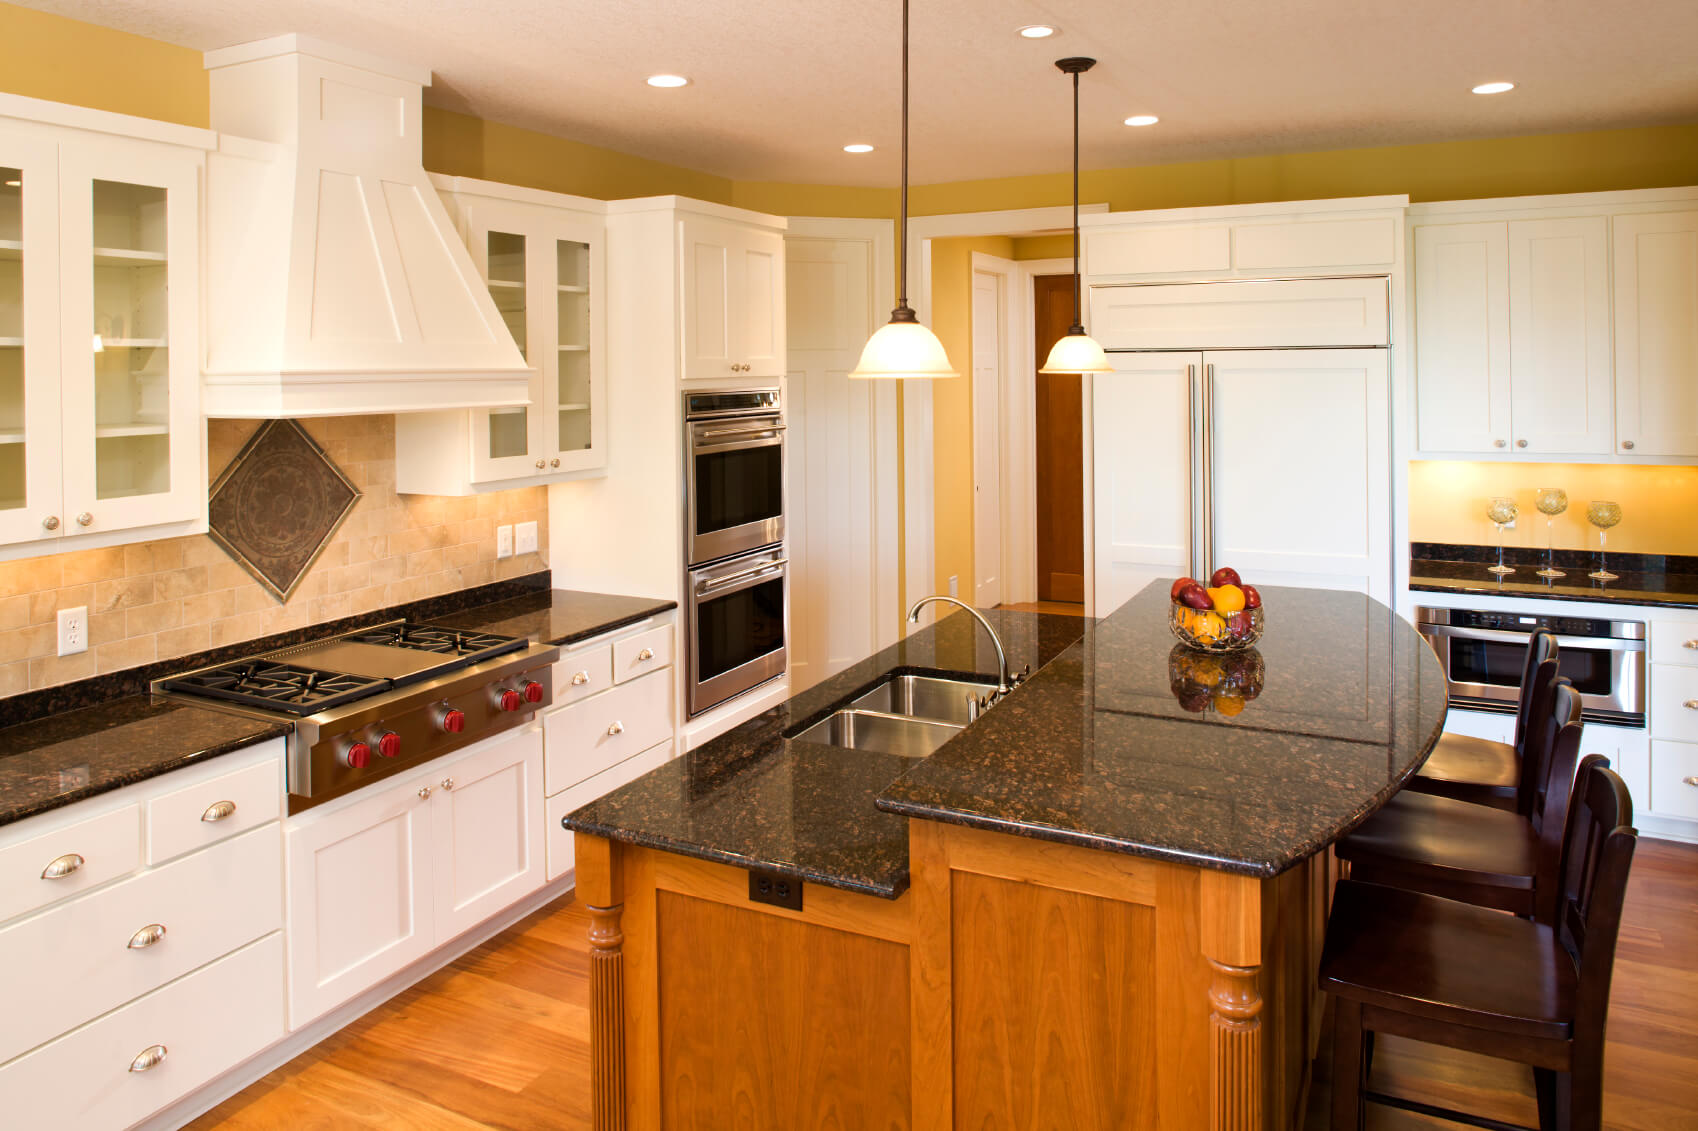 Beau Here We Have Another Two Tiered Island Adding Contrast To A Kitchen With  Warm Natural